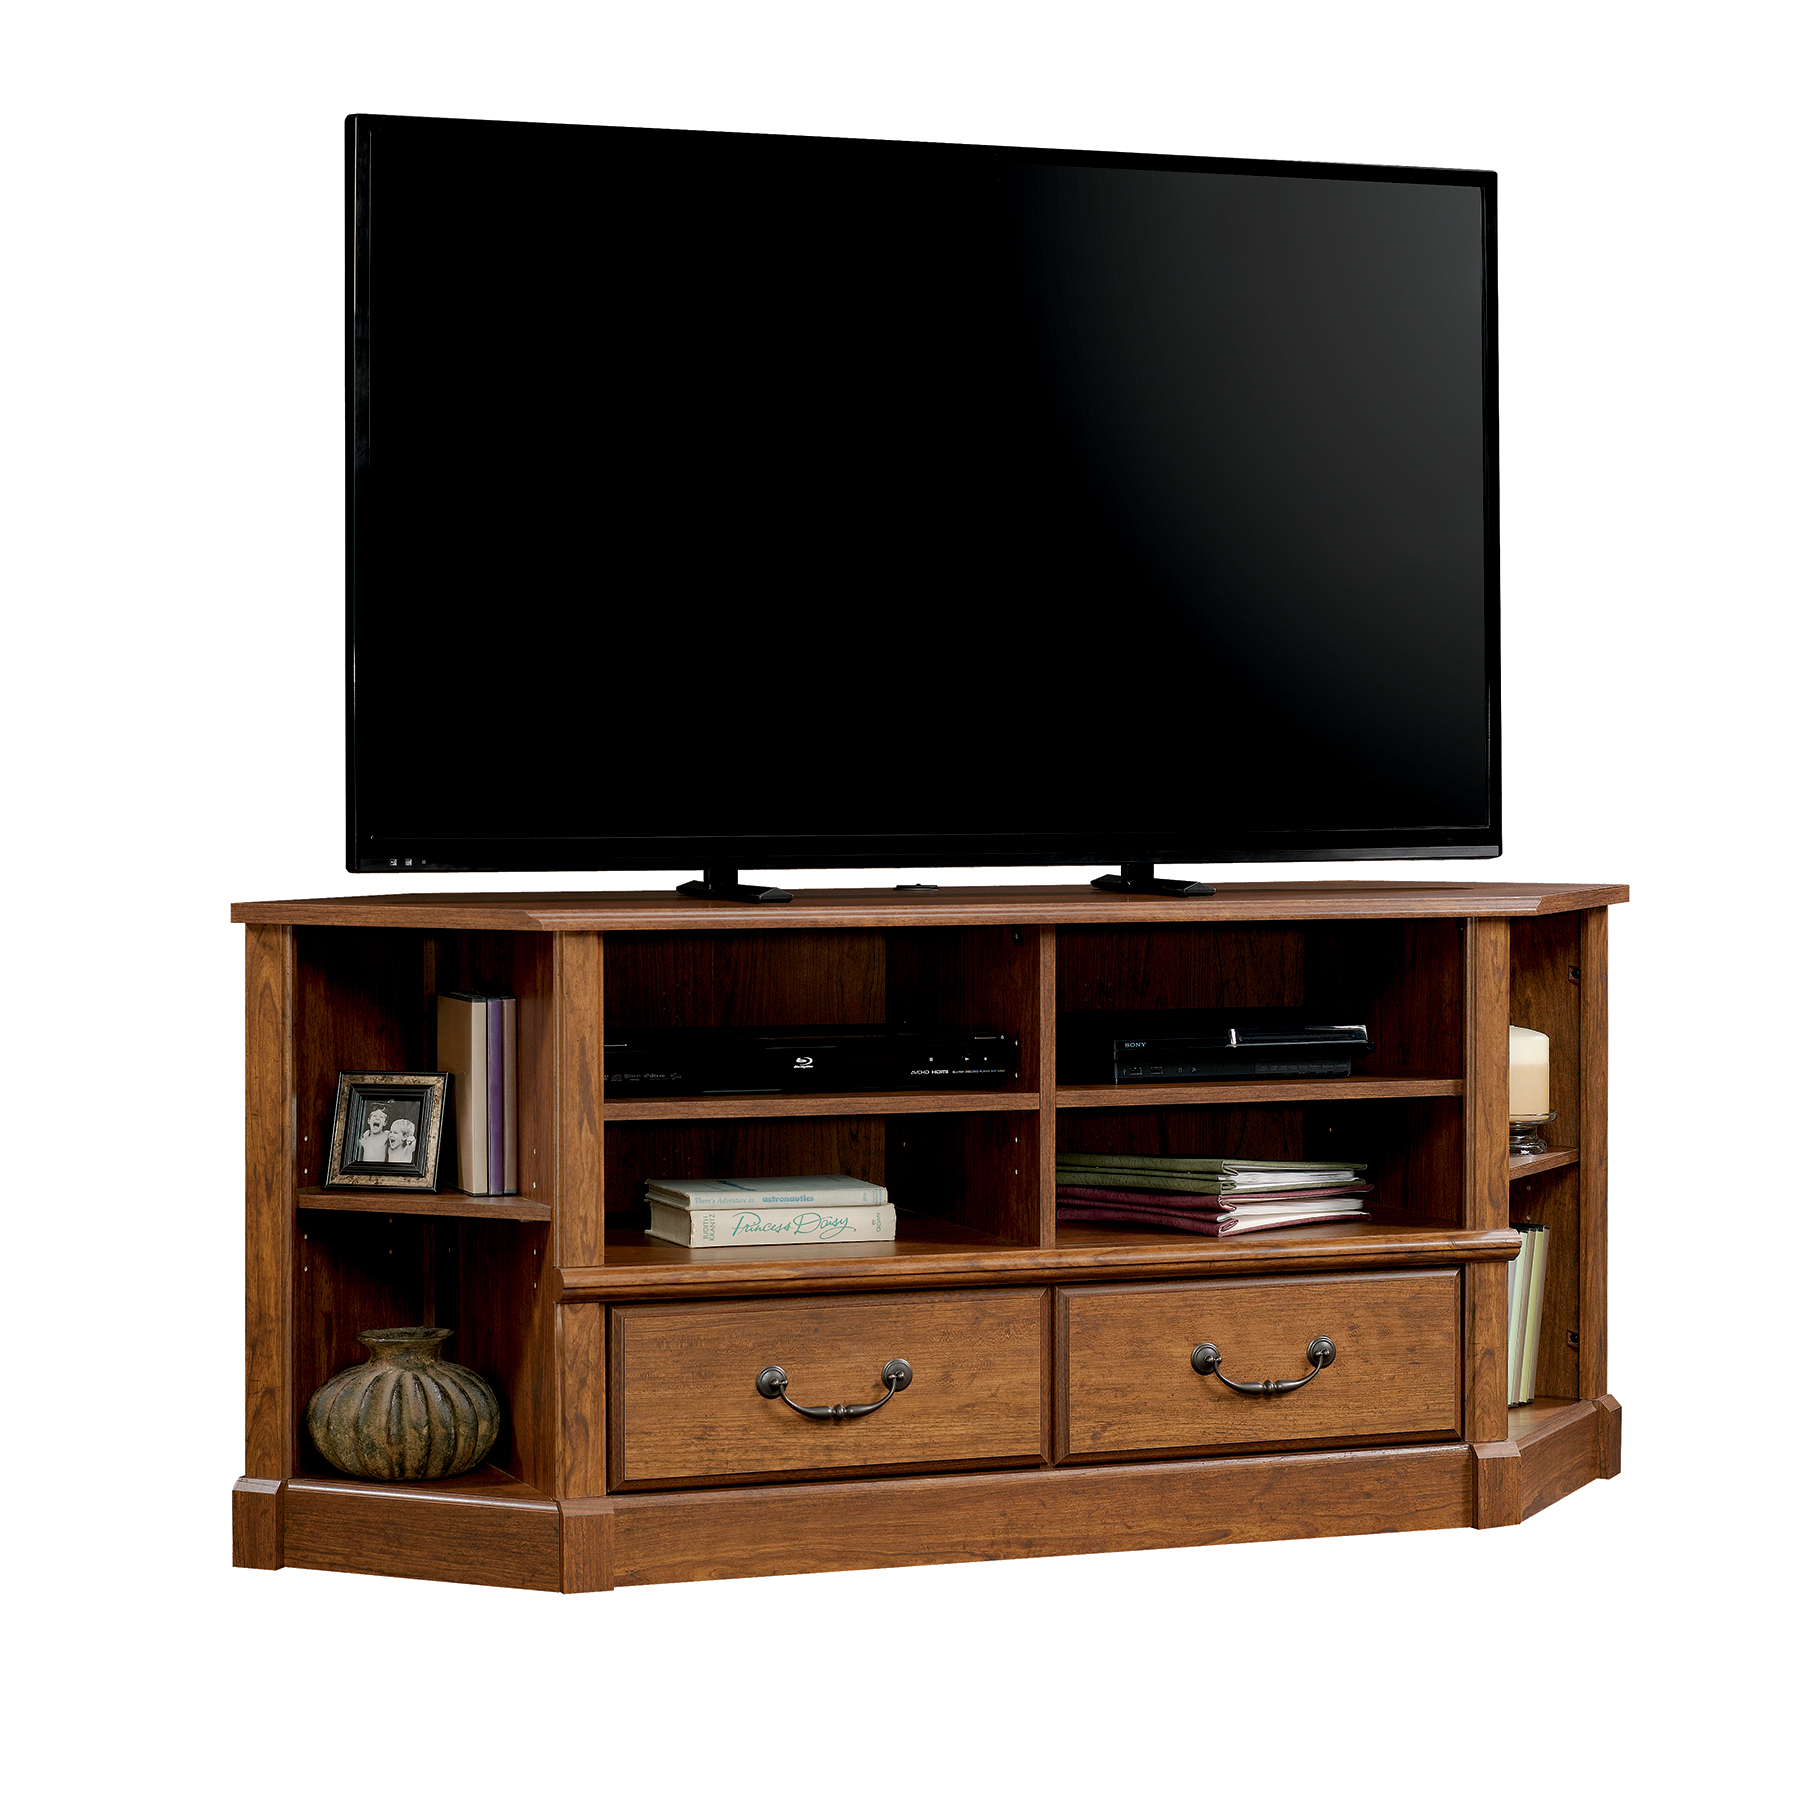 The Sauder Orchard Hills Corner Entertainment Credenza